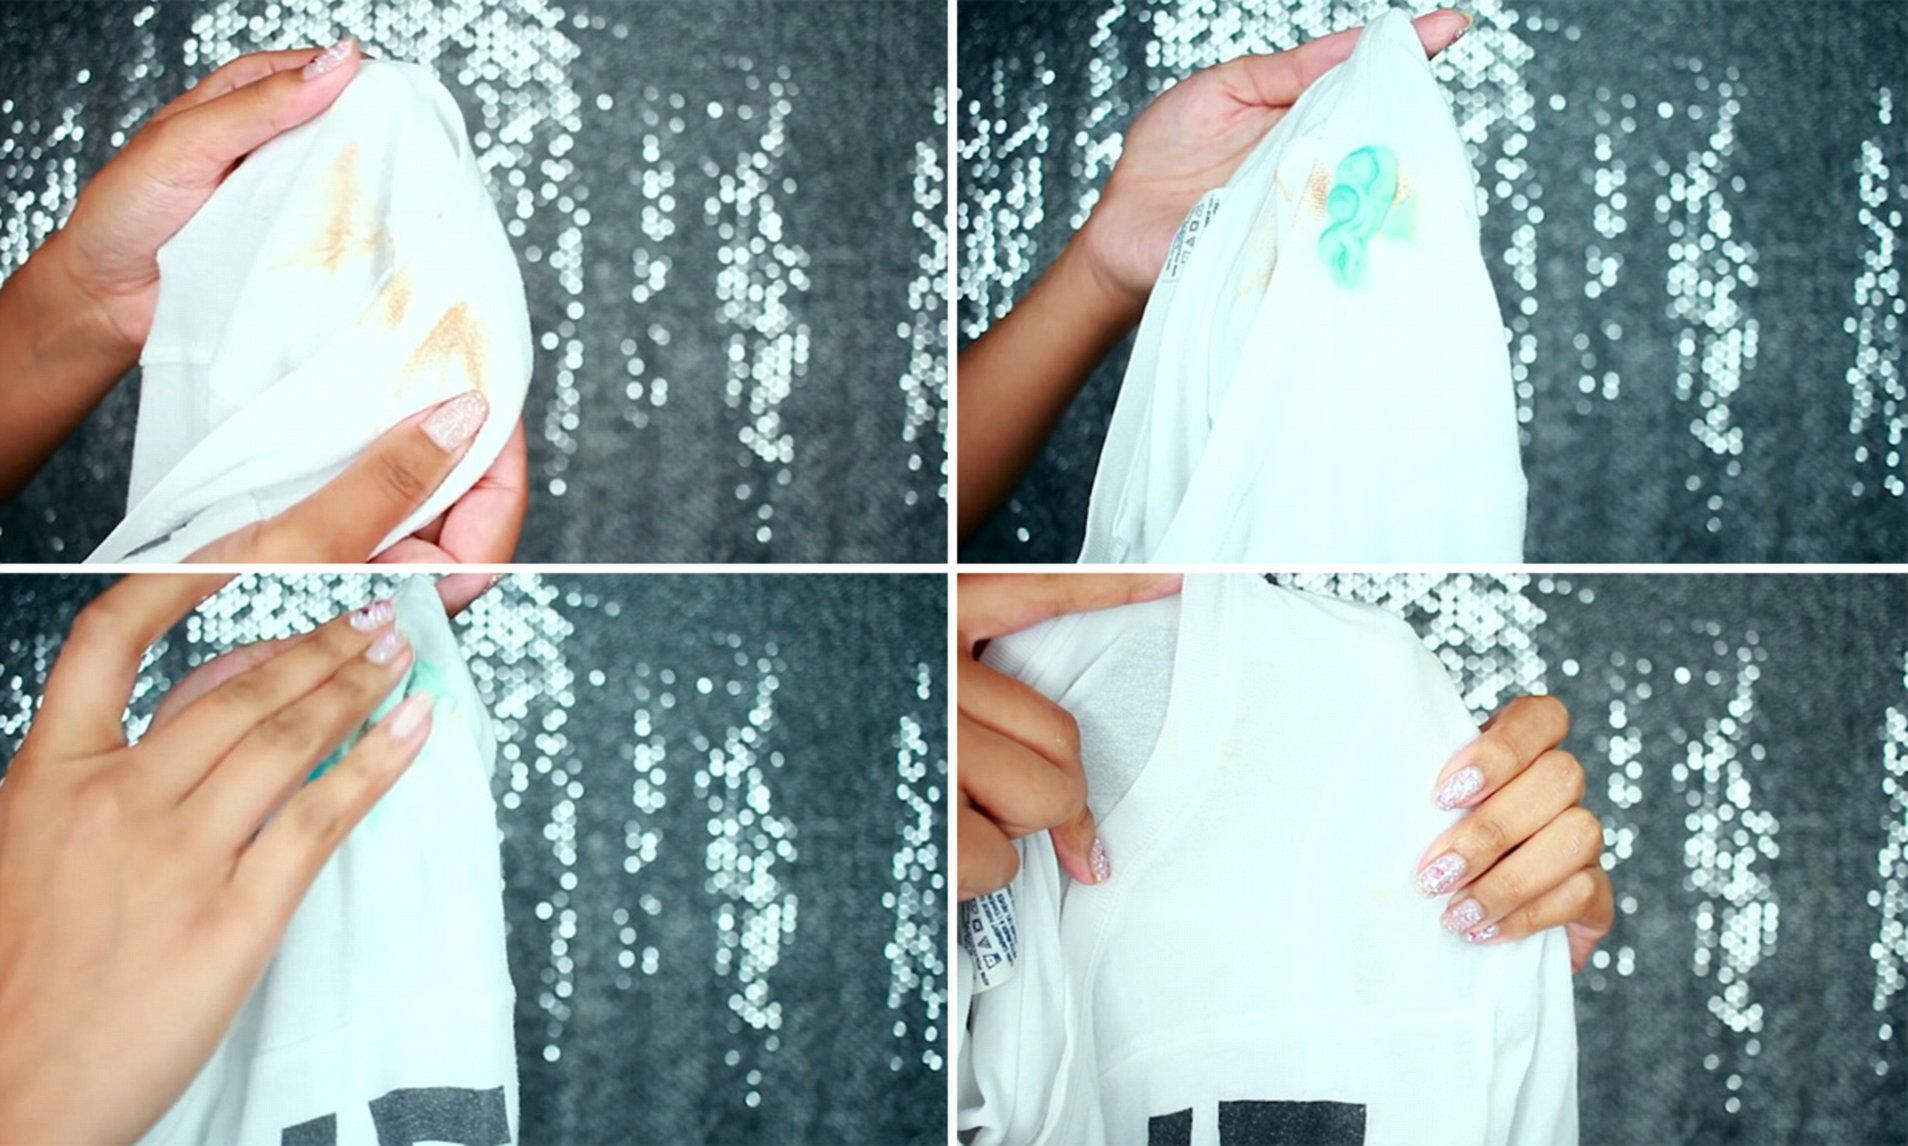 How to remove makeup stains from clothes in ONE MINUTE